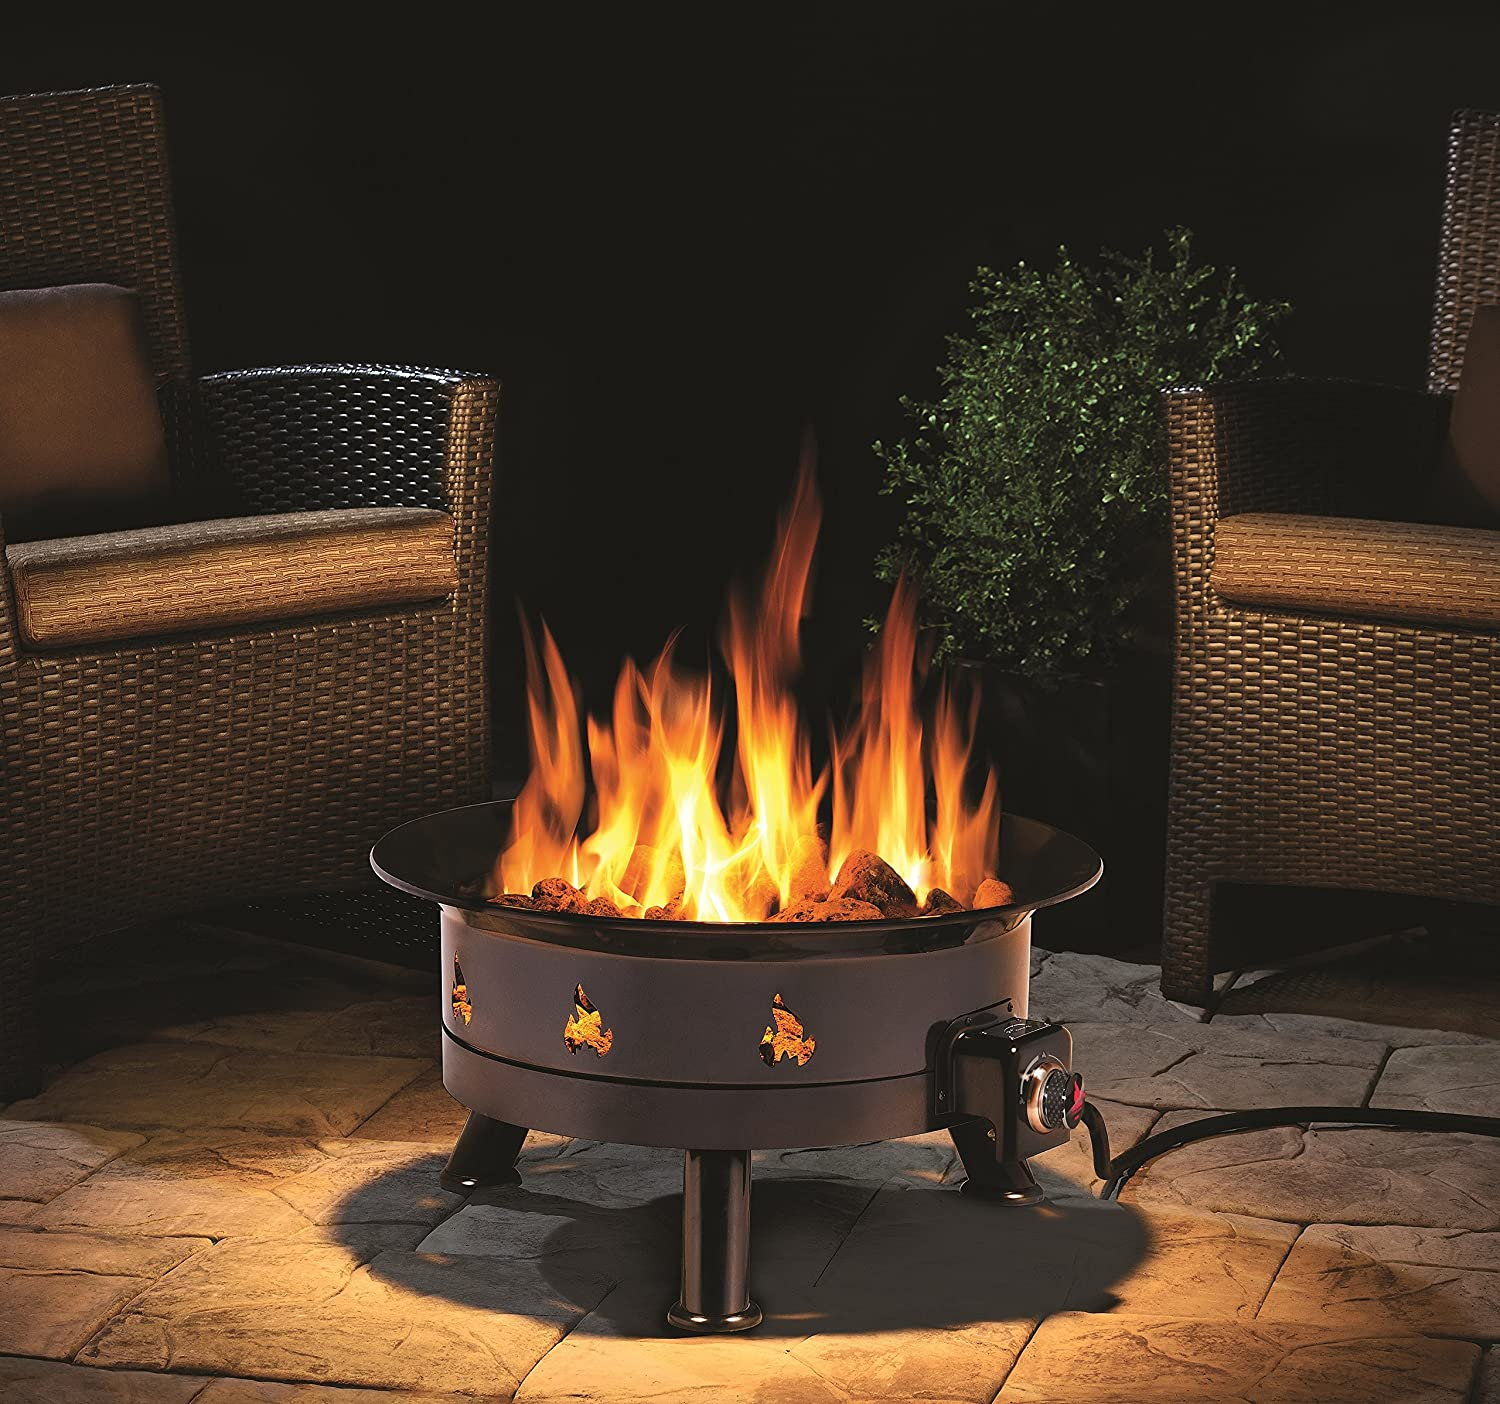 Black Outland Living 762 UV and Weather Resistant Cypress ... on Outland Living Cypress Fire Pit id=37213